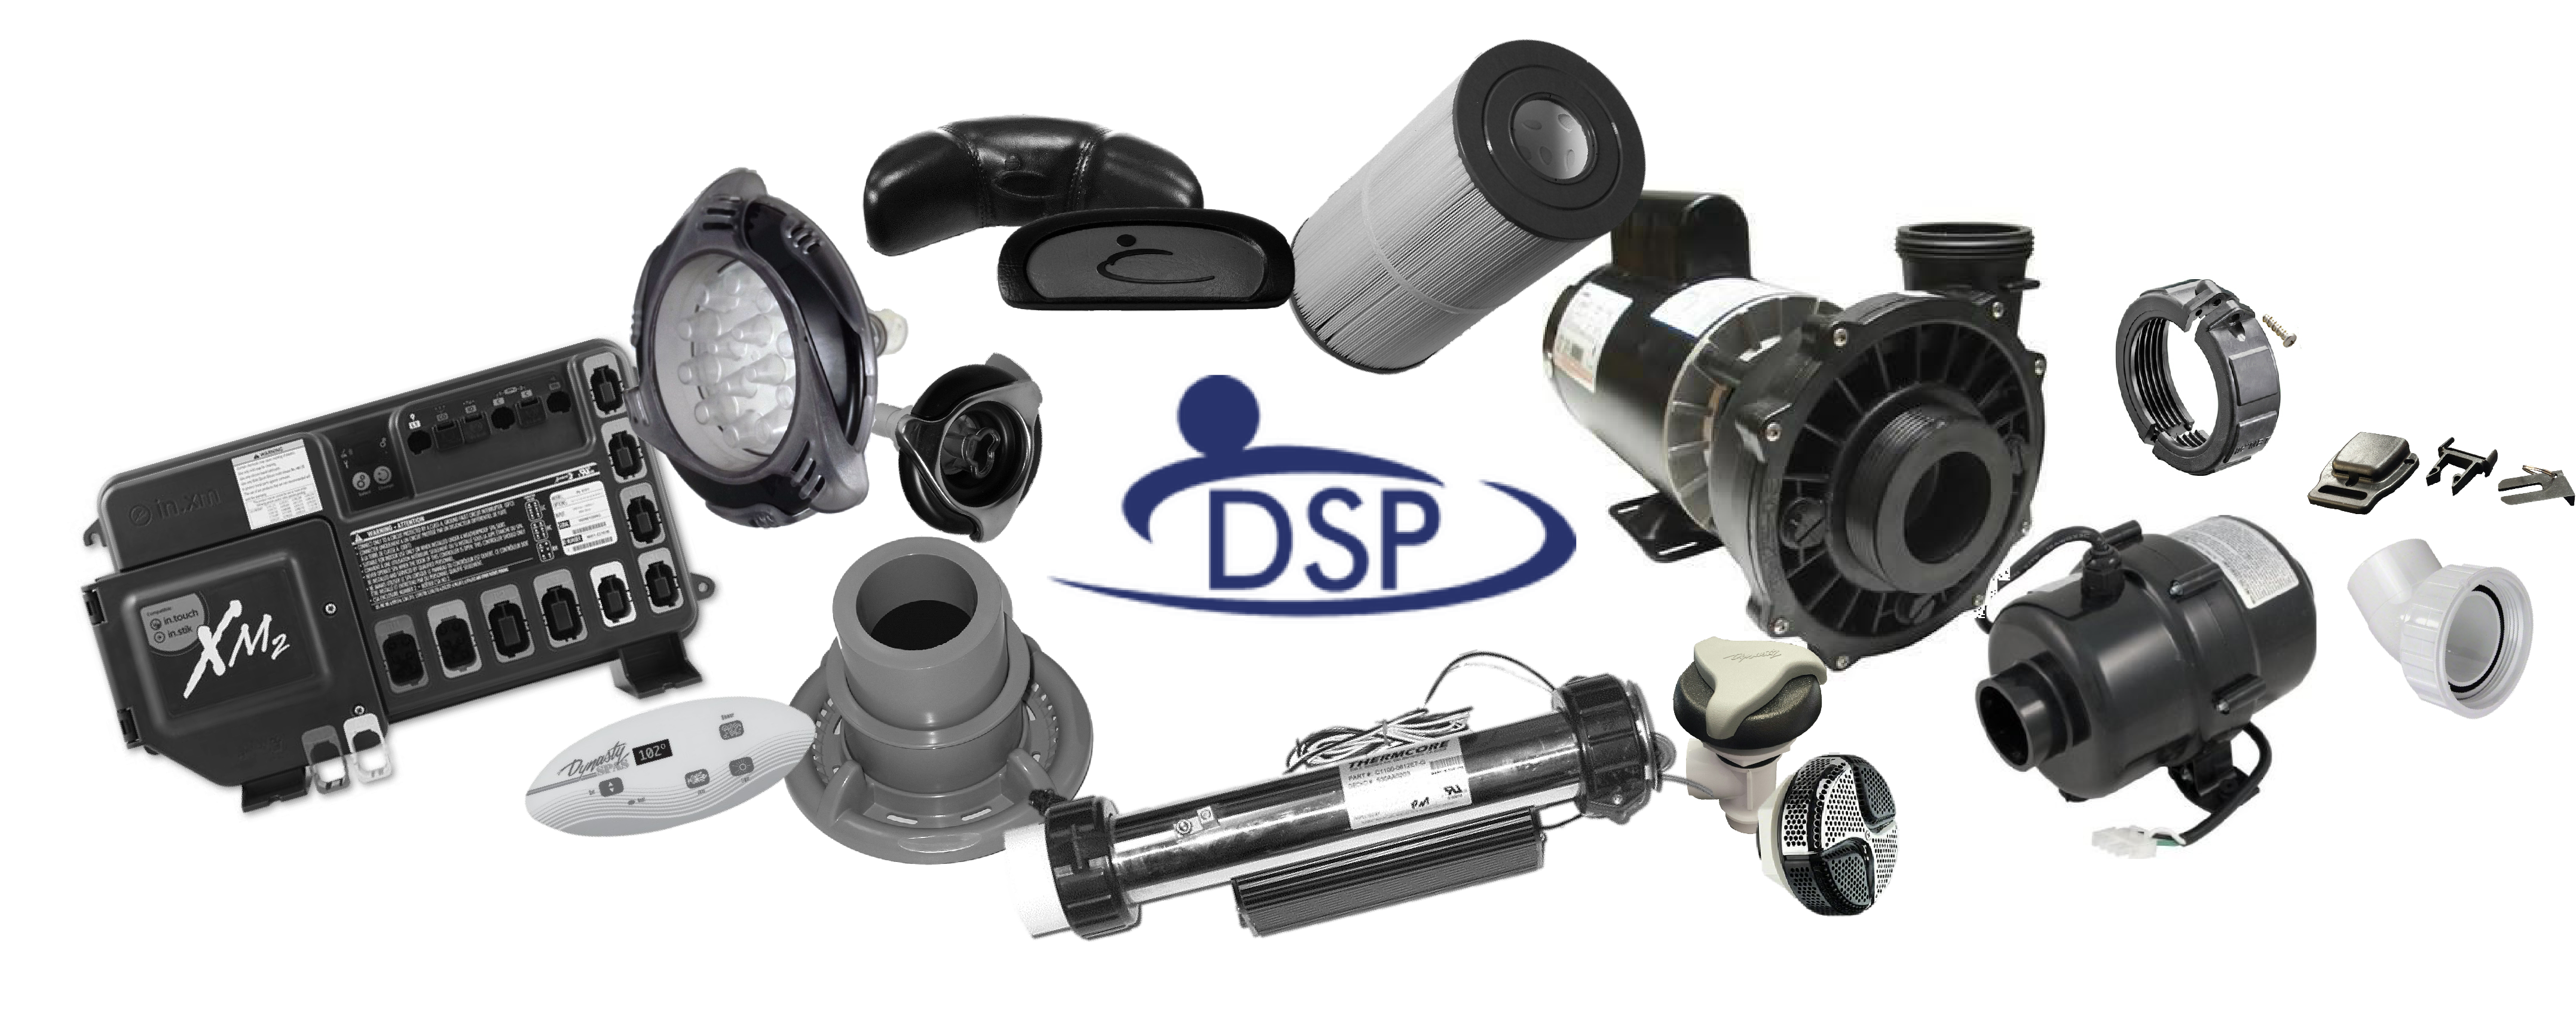 dsp-parts-image-2a.png